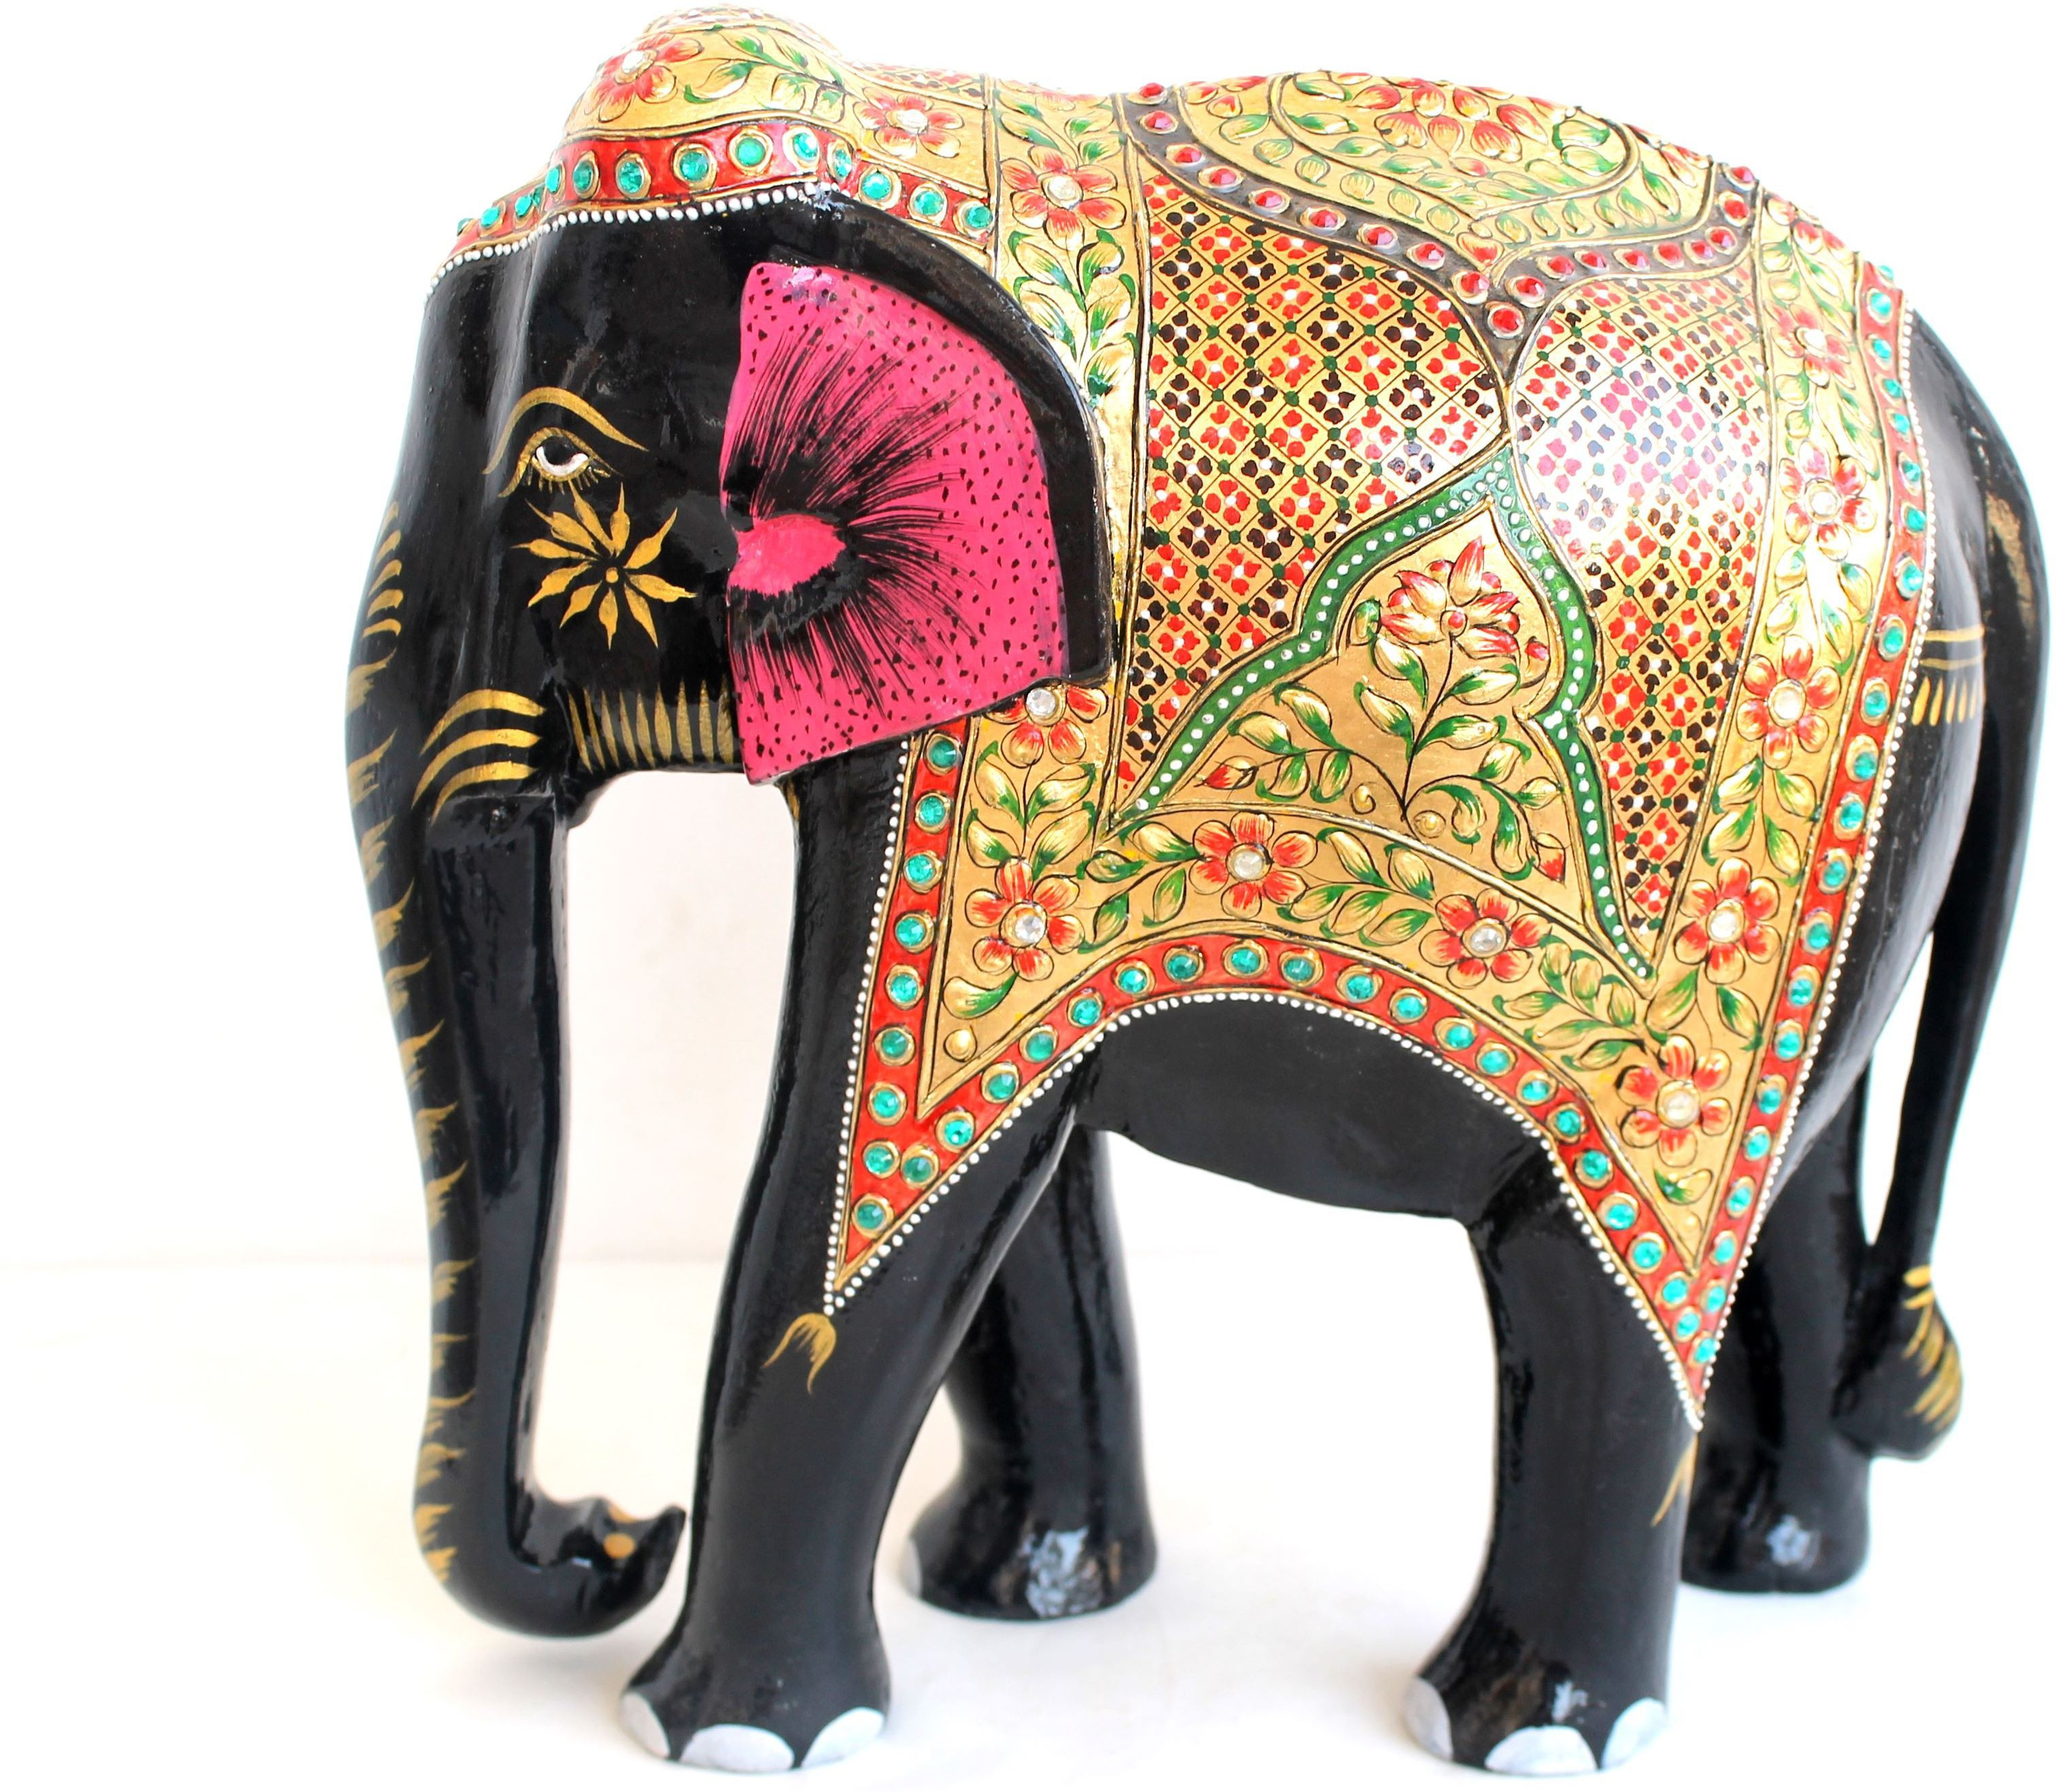 Craft International Wooden Elephant Gold Painted - 12 Inch Showpiece  -  31 cm(Wooden, Multicolor)